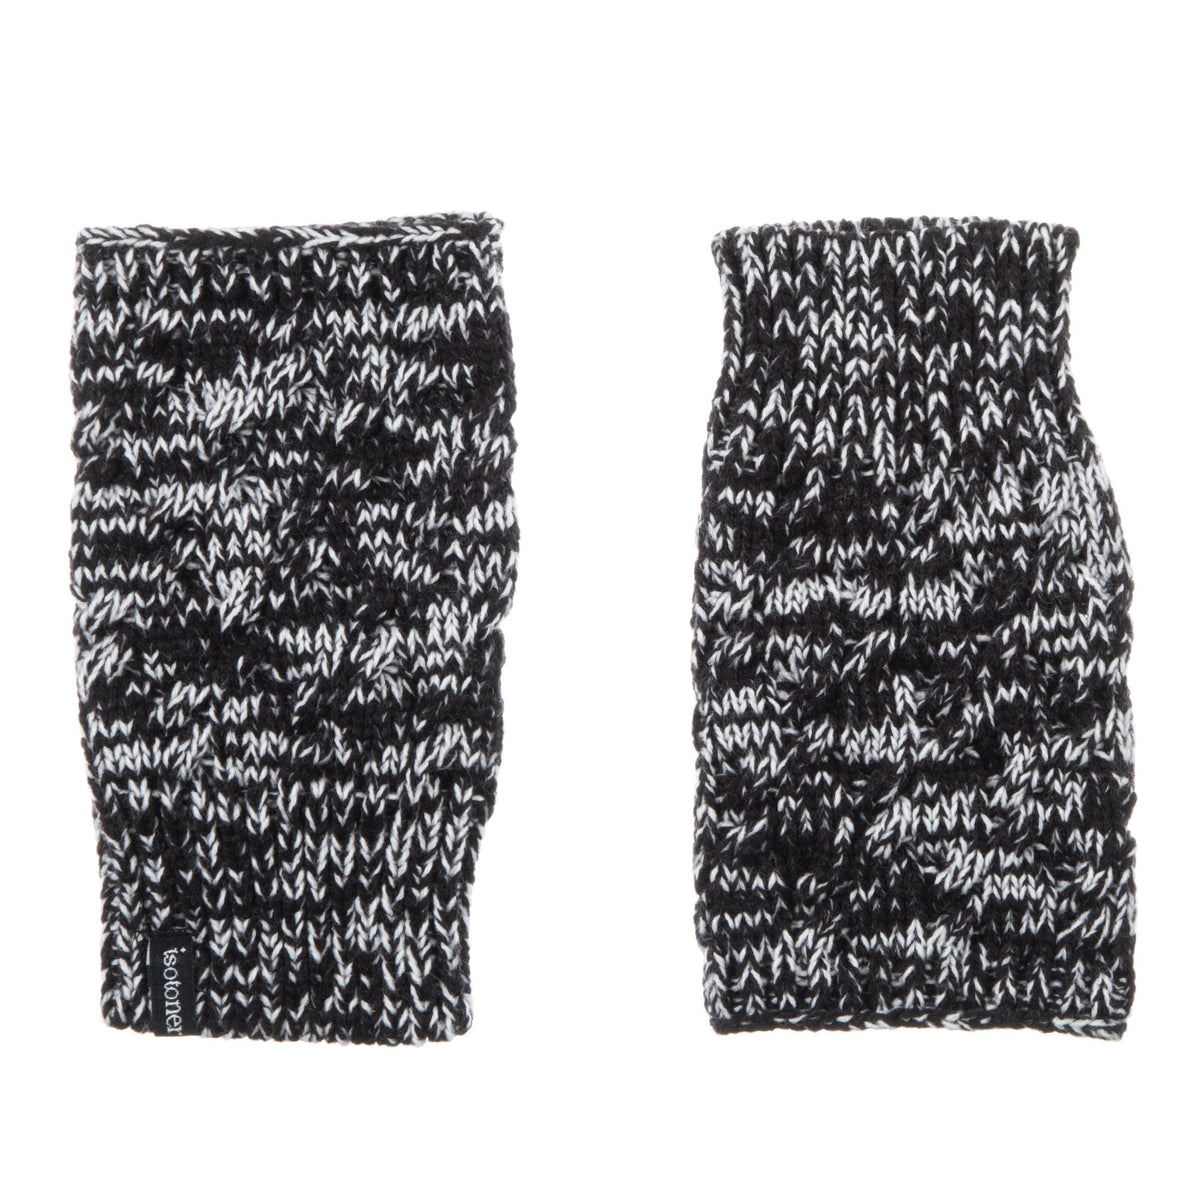 Women's Acrylic Fingerless Glove Cozies in Black Stripe Front and Back